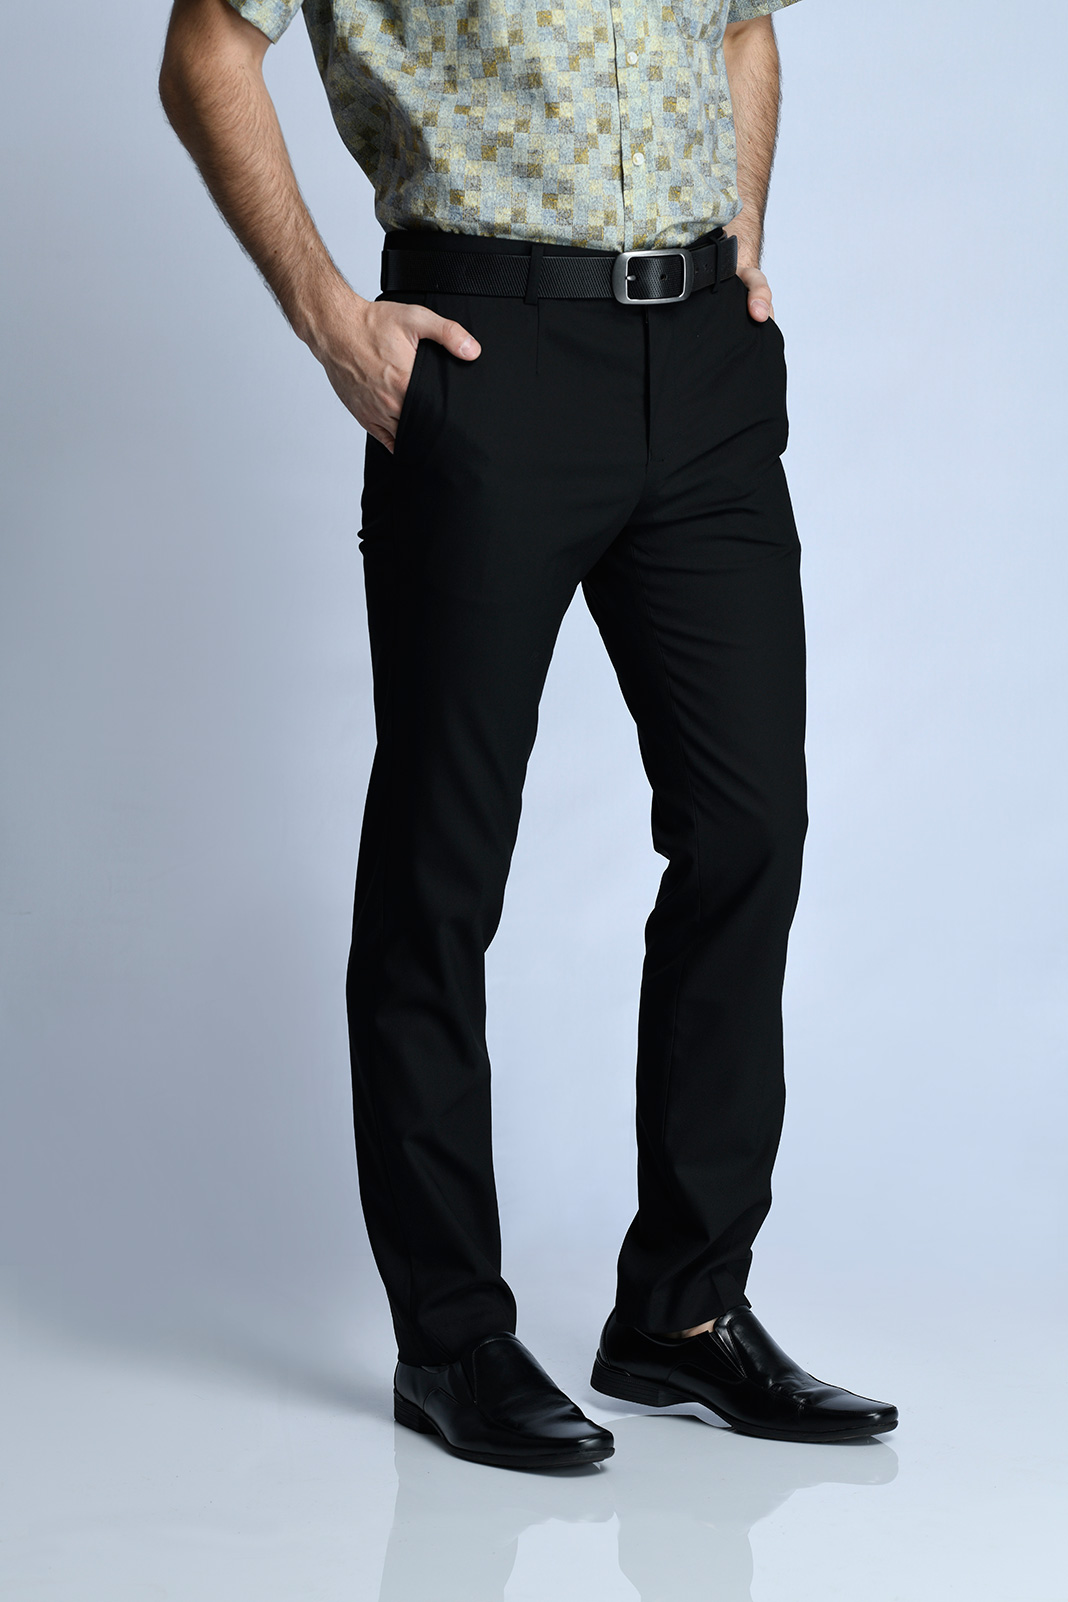 CELANA PANJANG FORMAL SLIM FIT (HITAM)